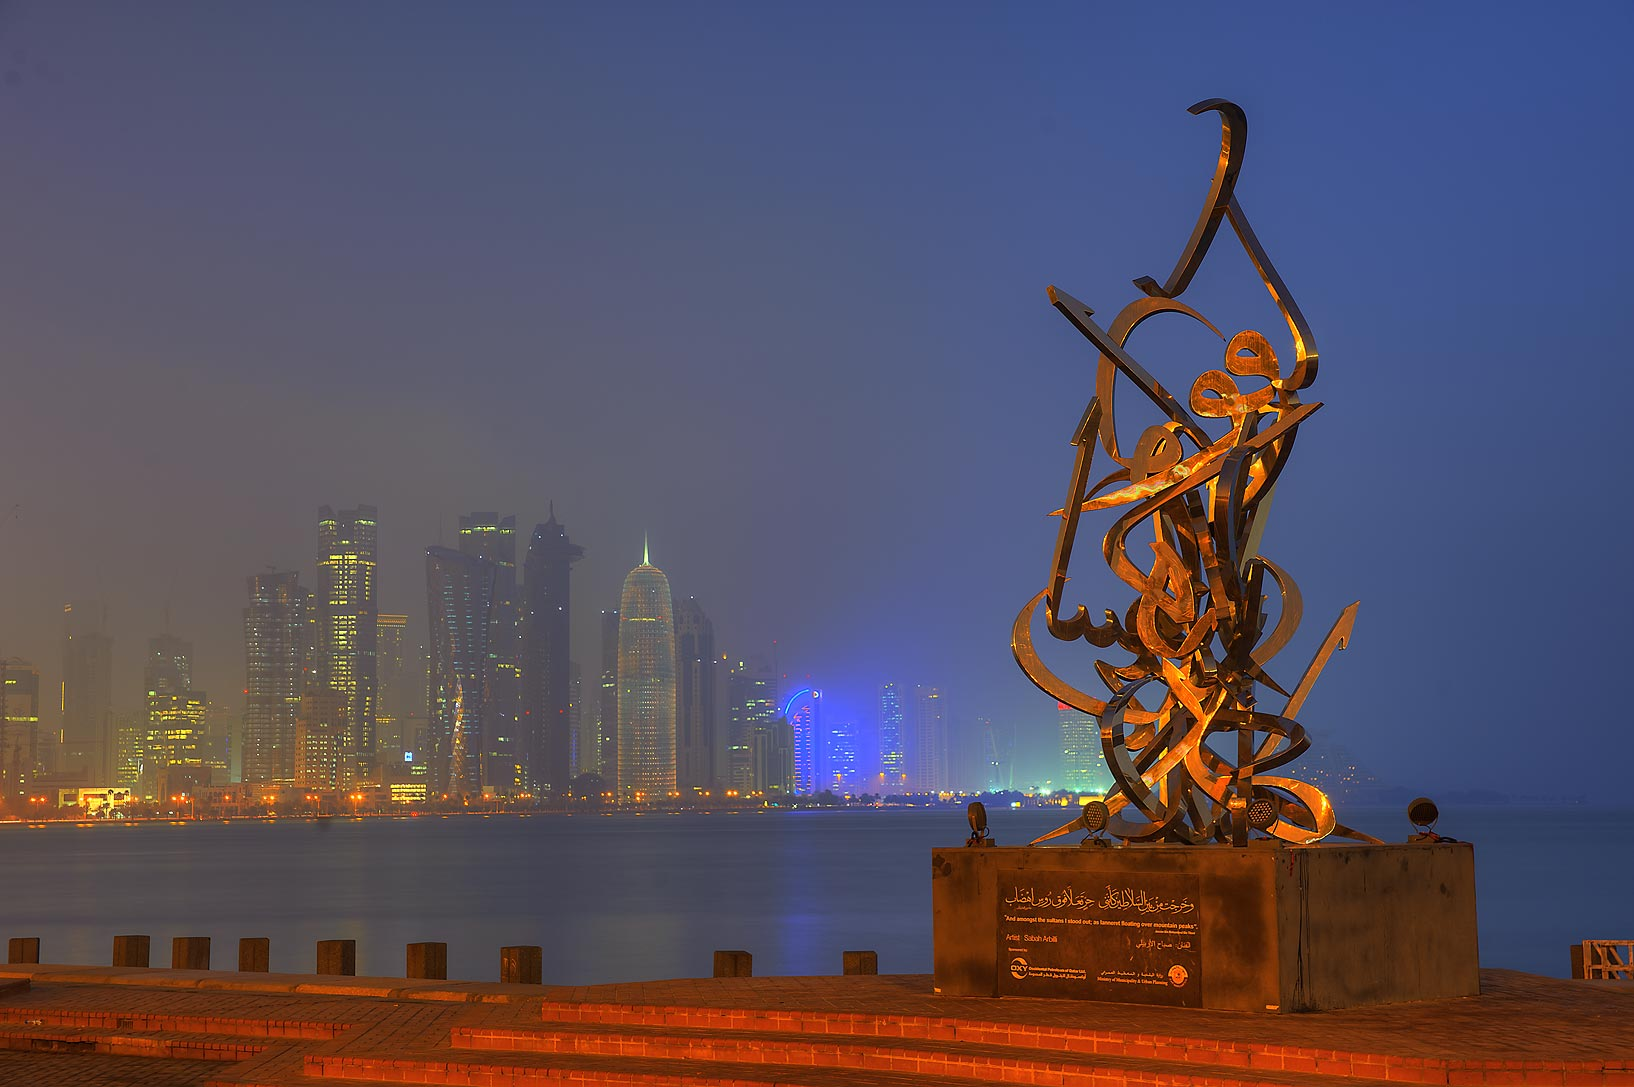 Calligraphy Sculpture by Sabah Arbilli on Corniche Promenade at morning dusk. Doha, Qatar